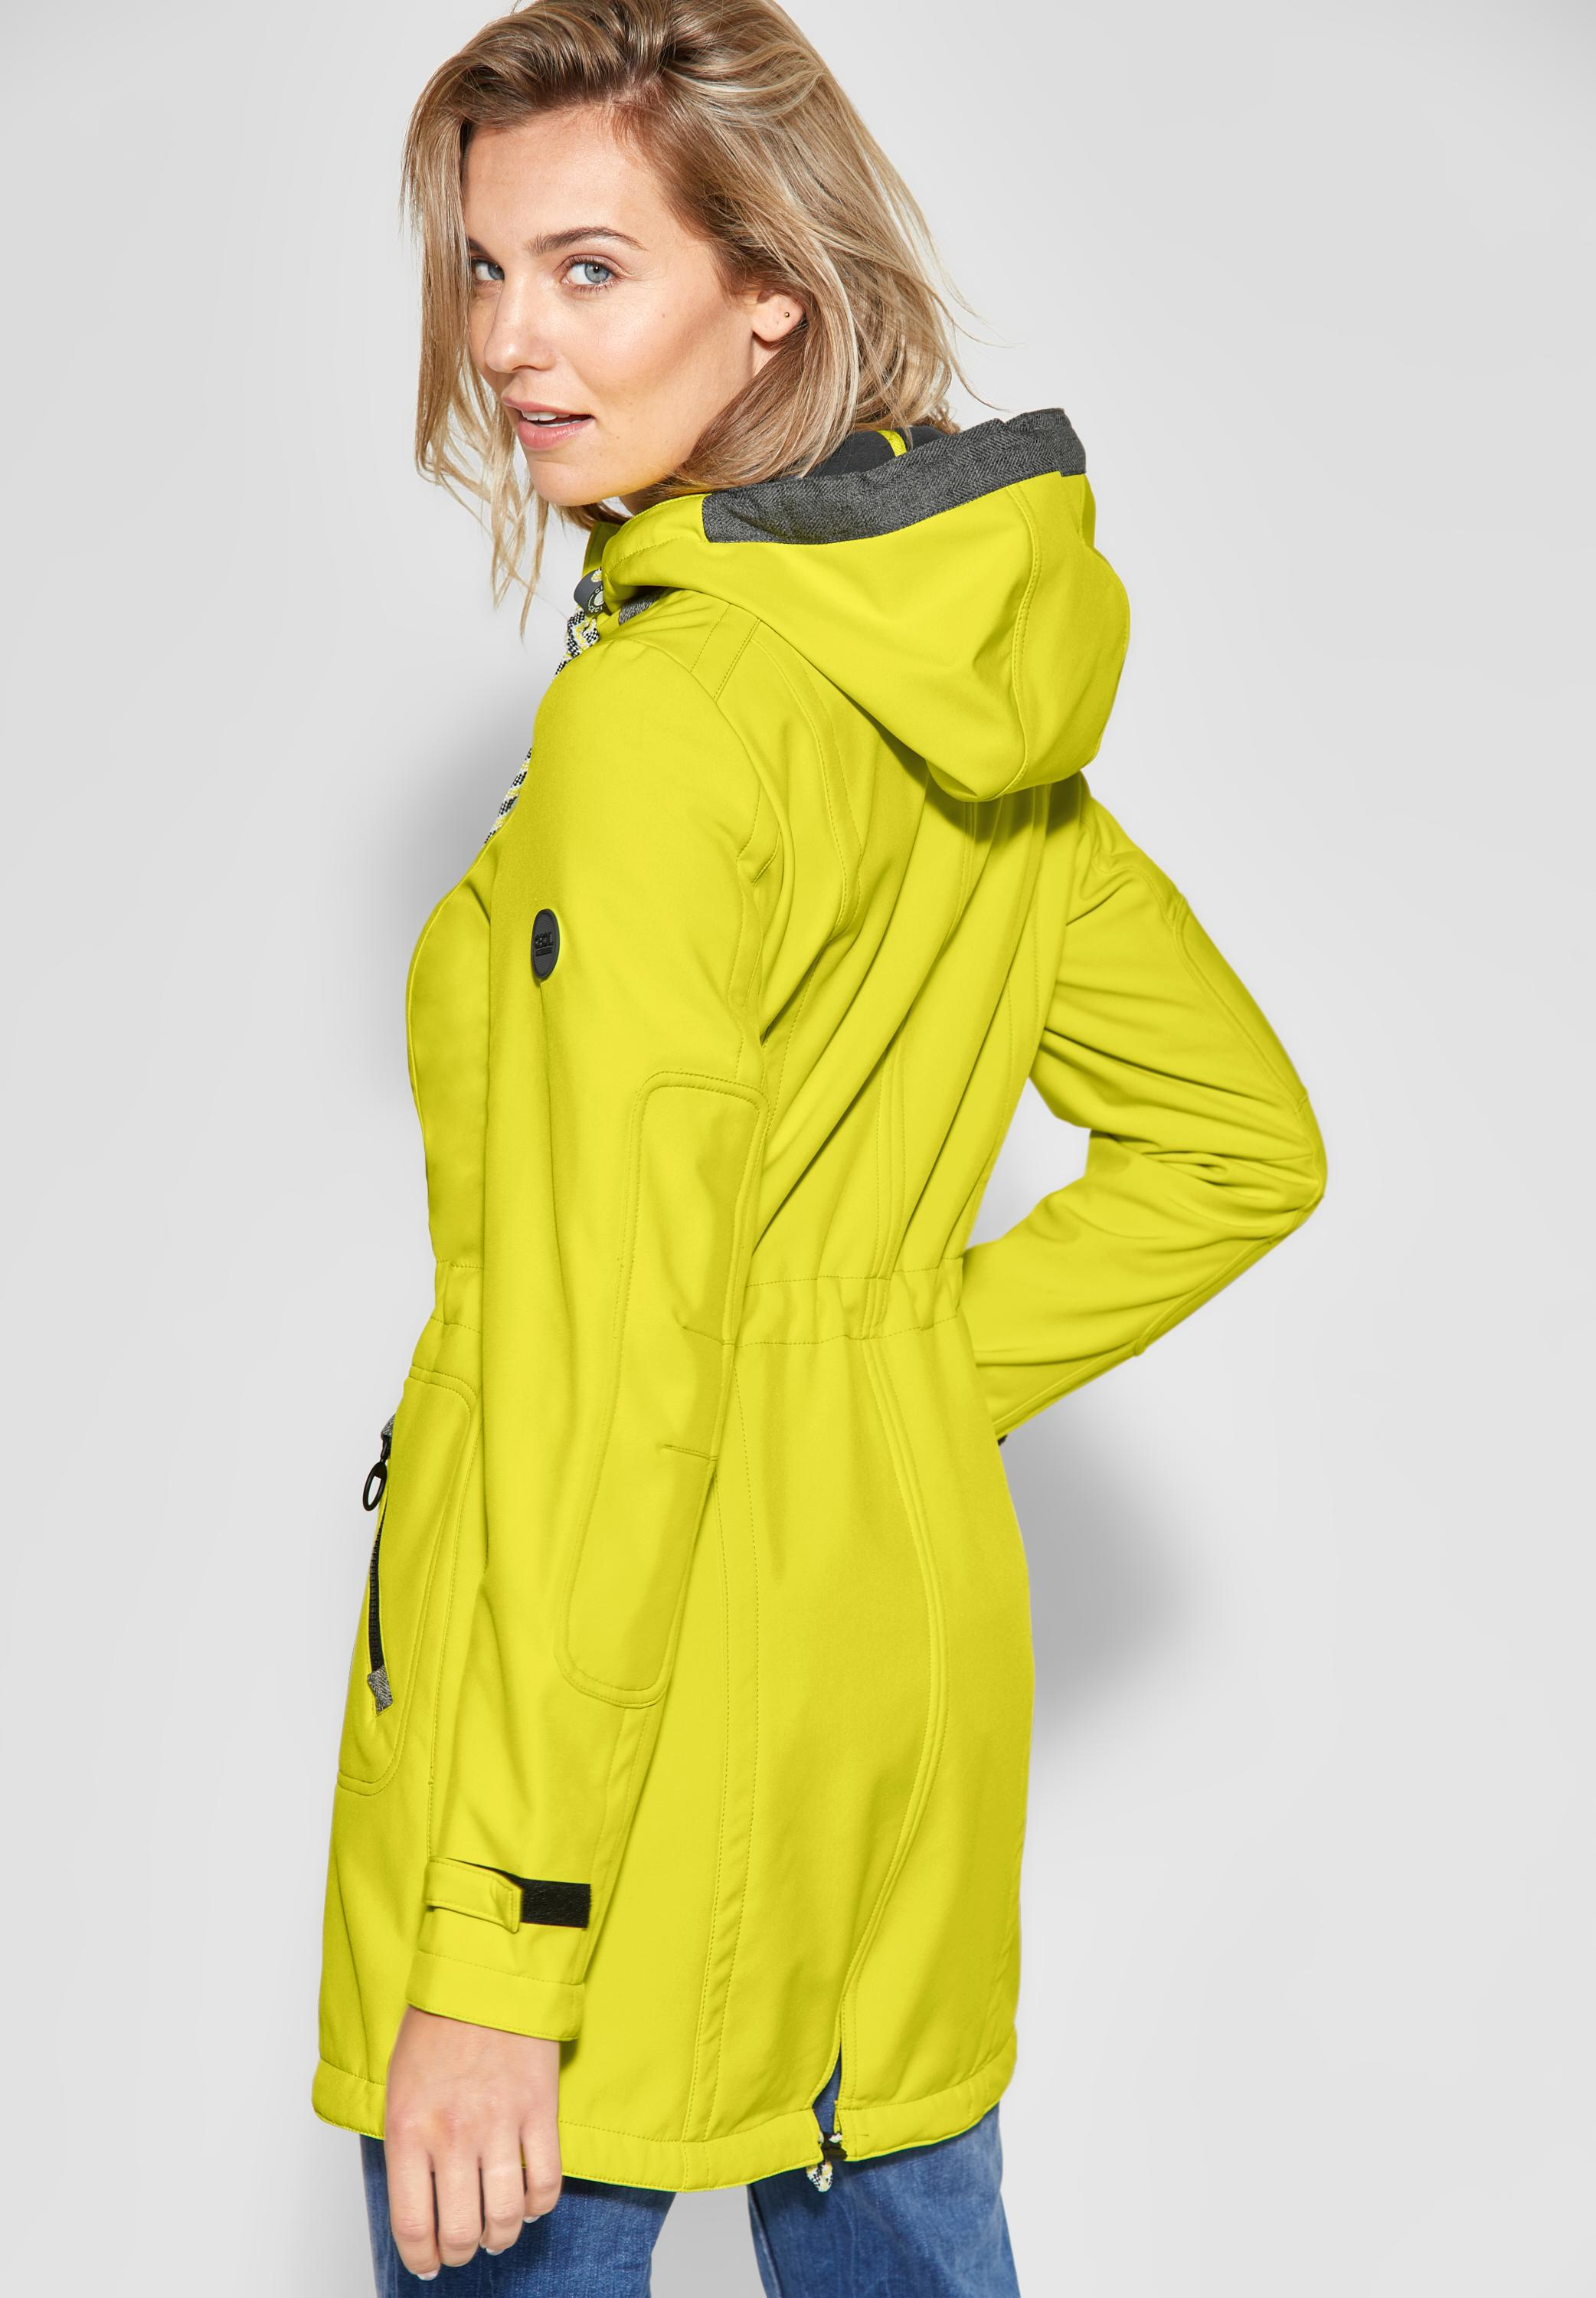 100% authentic thoughts on more photos CECIL - Sportliche Softshell-Jacke in Ultra Yellow